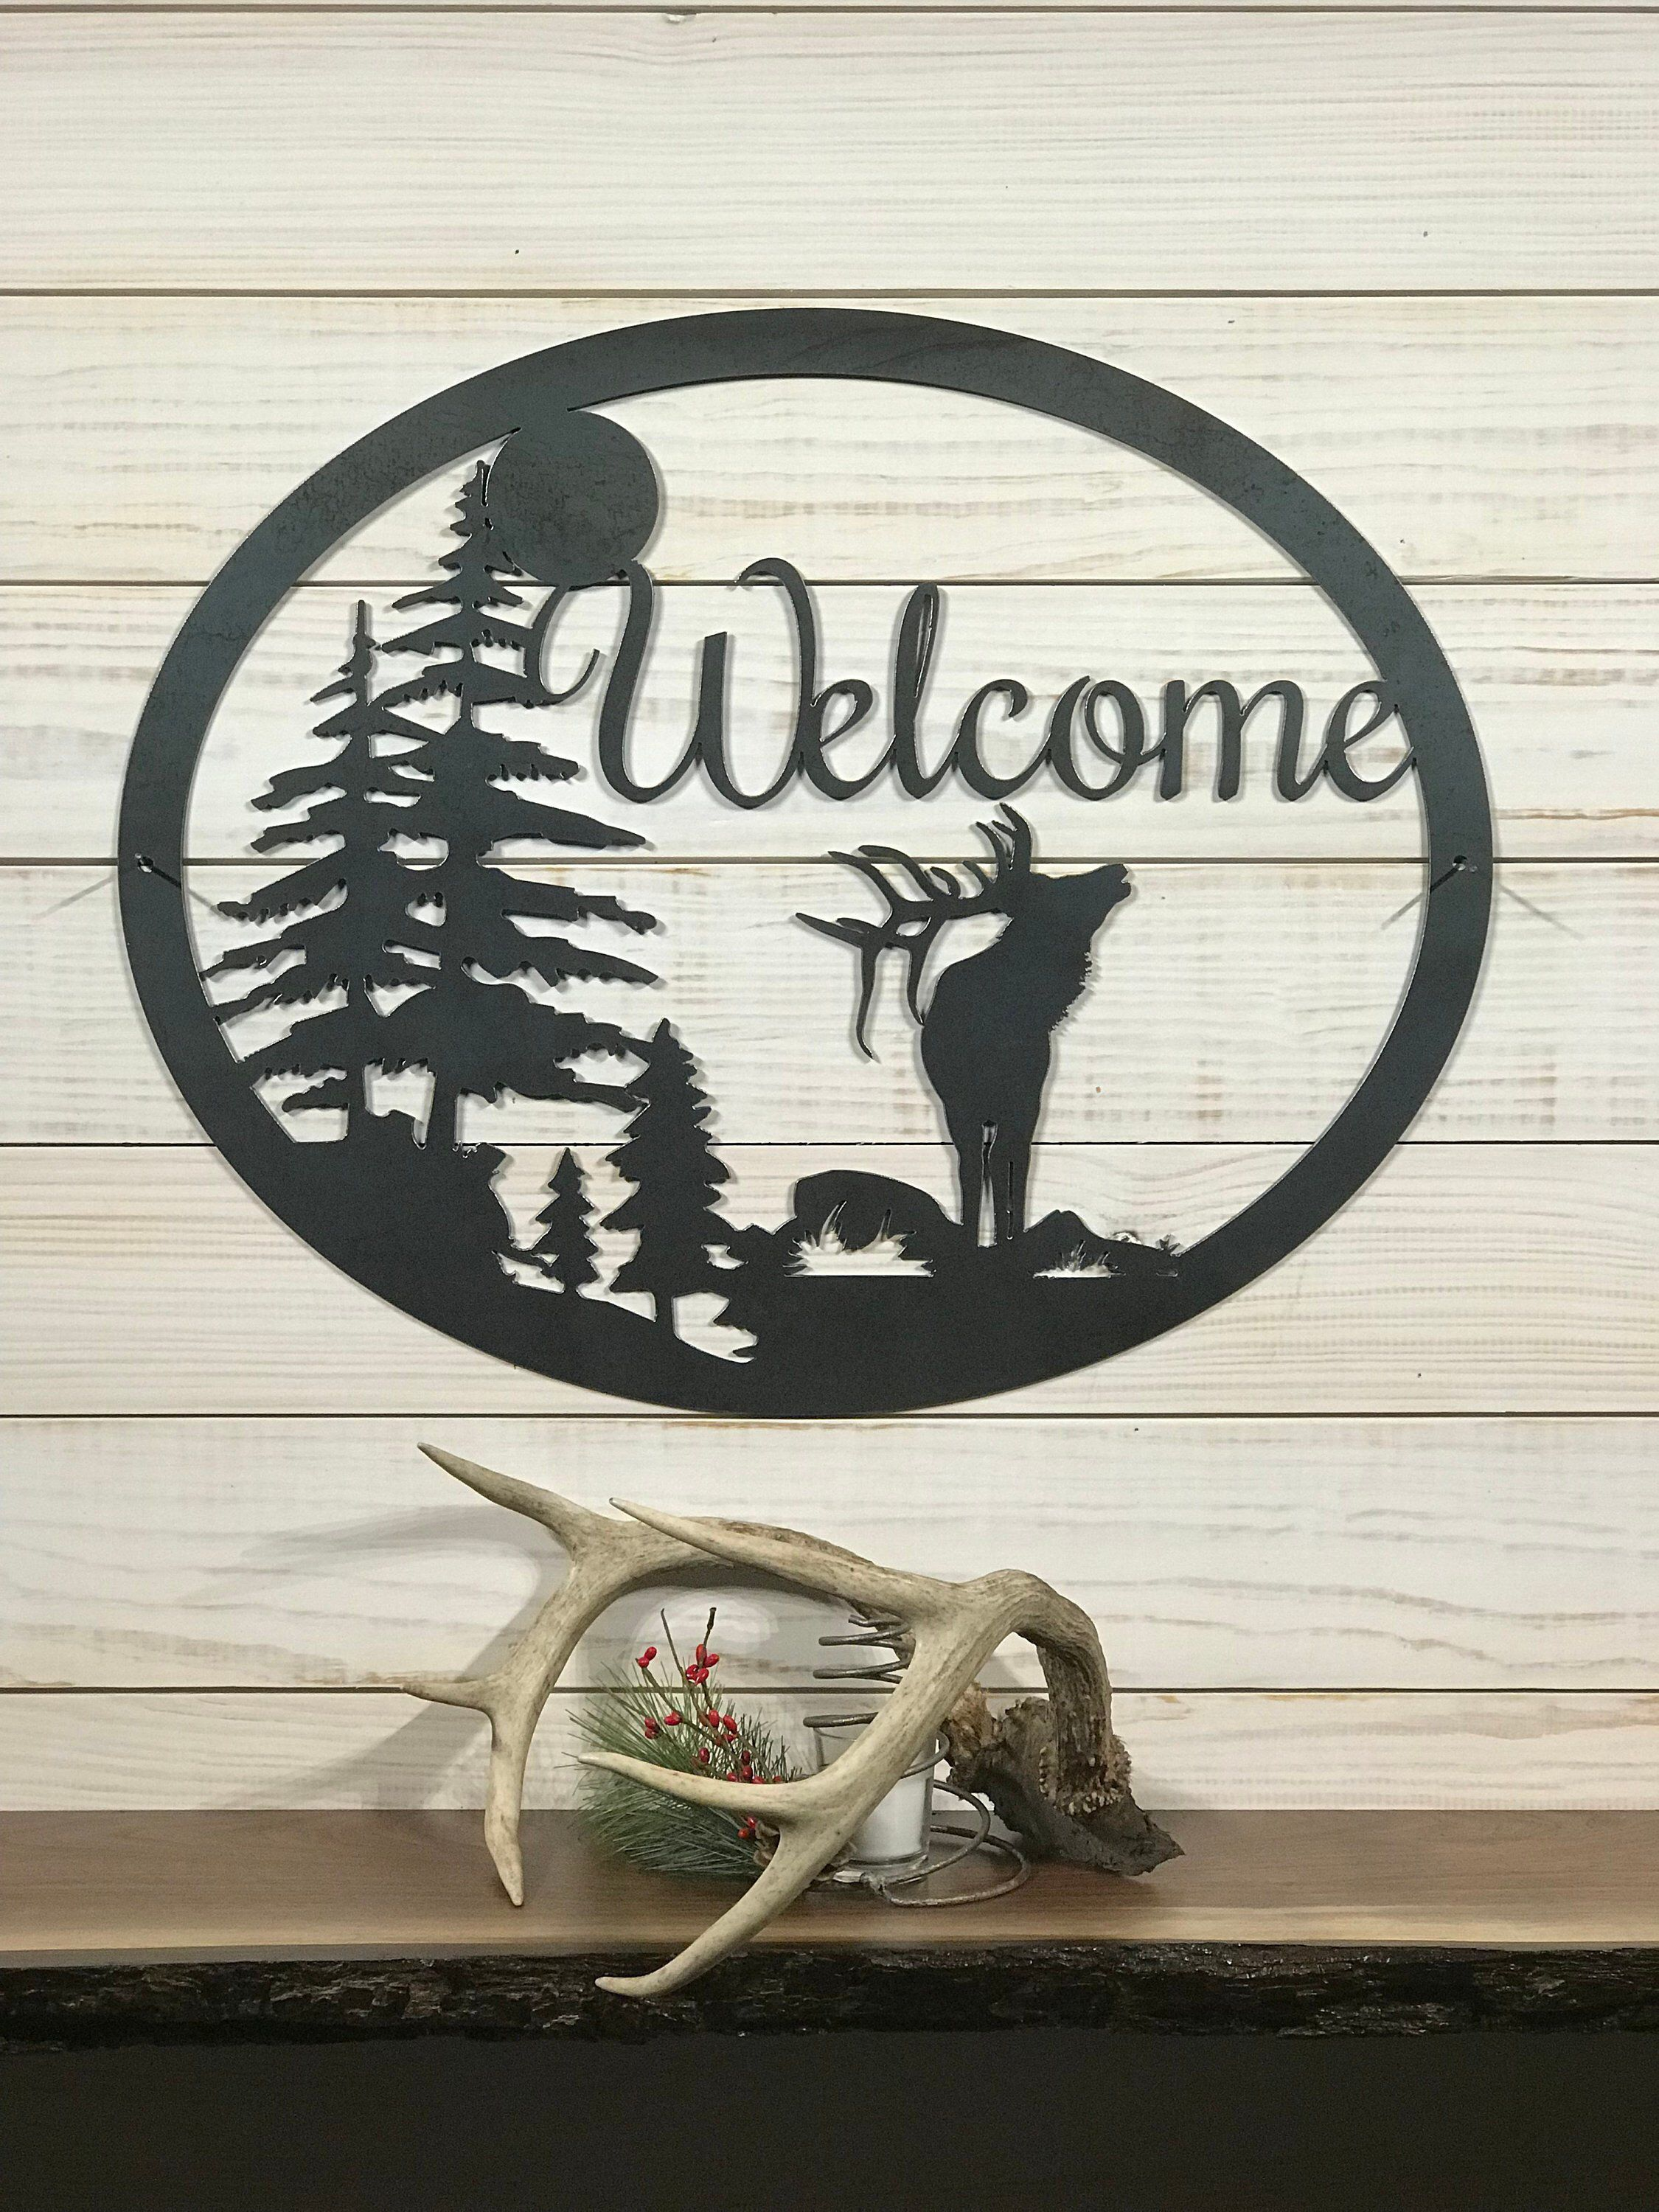 Large Metal Elk Welcome Sign 24 Inch Rustic Metal Decor Large Metal Sign By Precisioncut On Etsy Https Www Et Rustic Metal Decor Metal Decor Rustic Metal